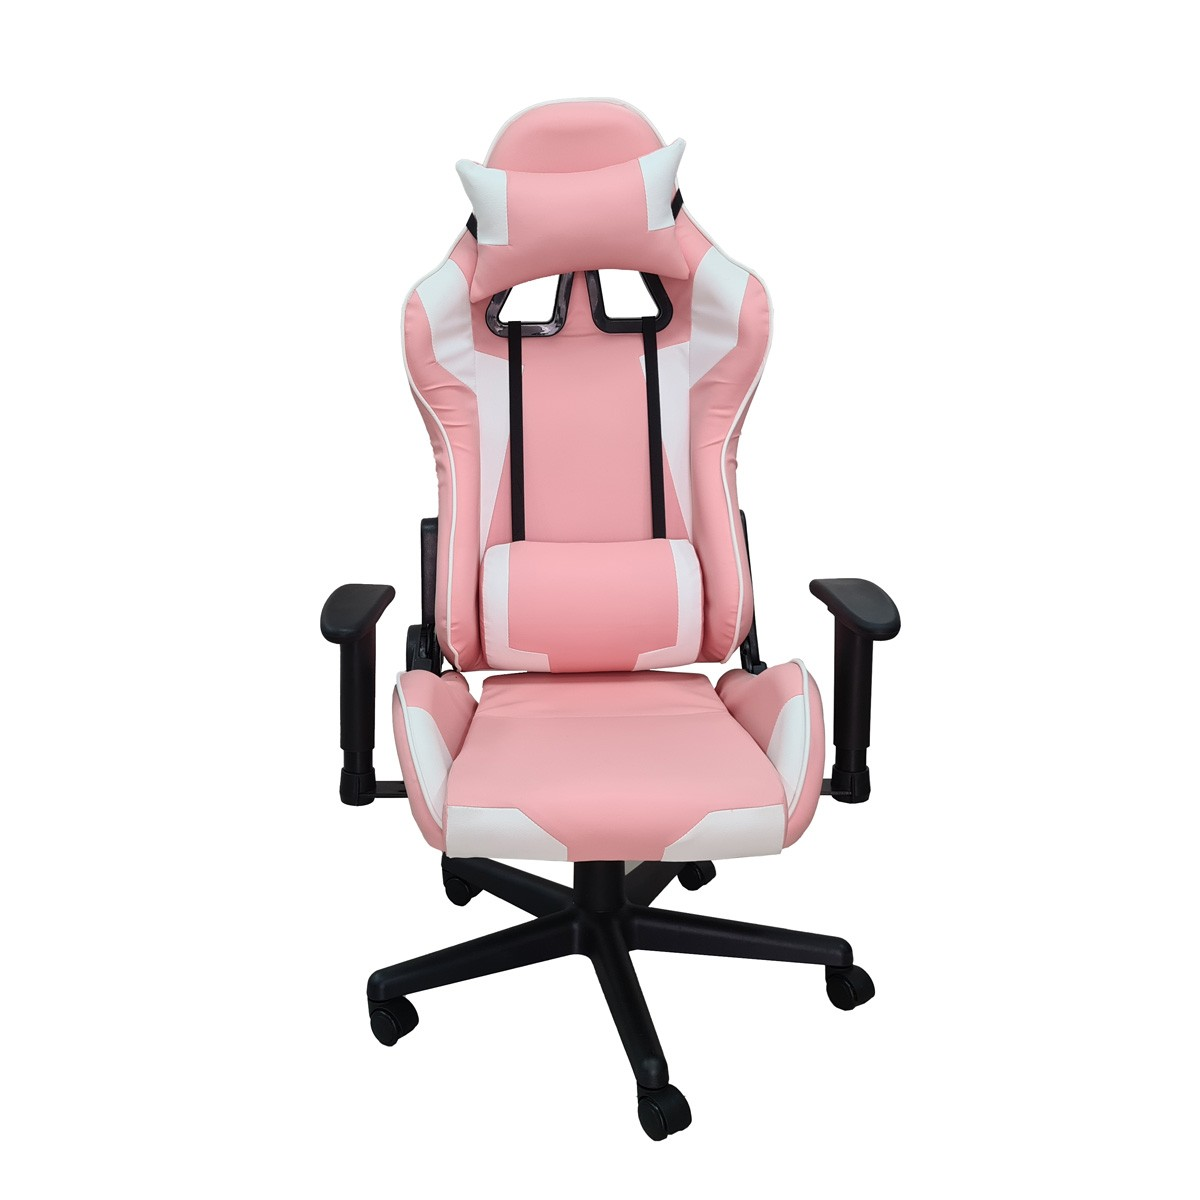 Cadeira Gamer Reclinável Rosa EG906 Evolut